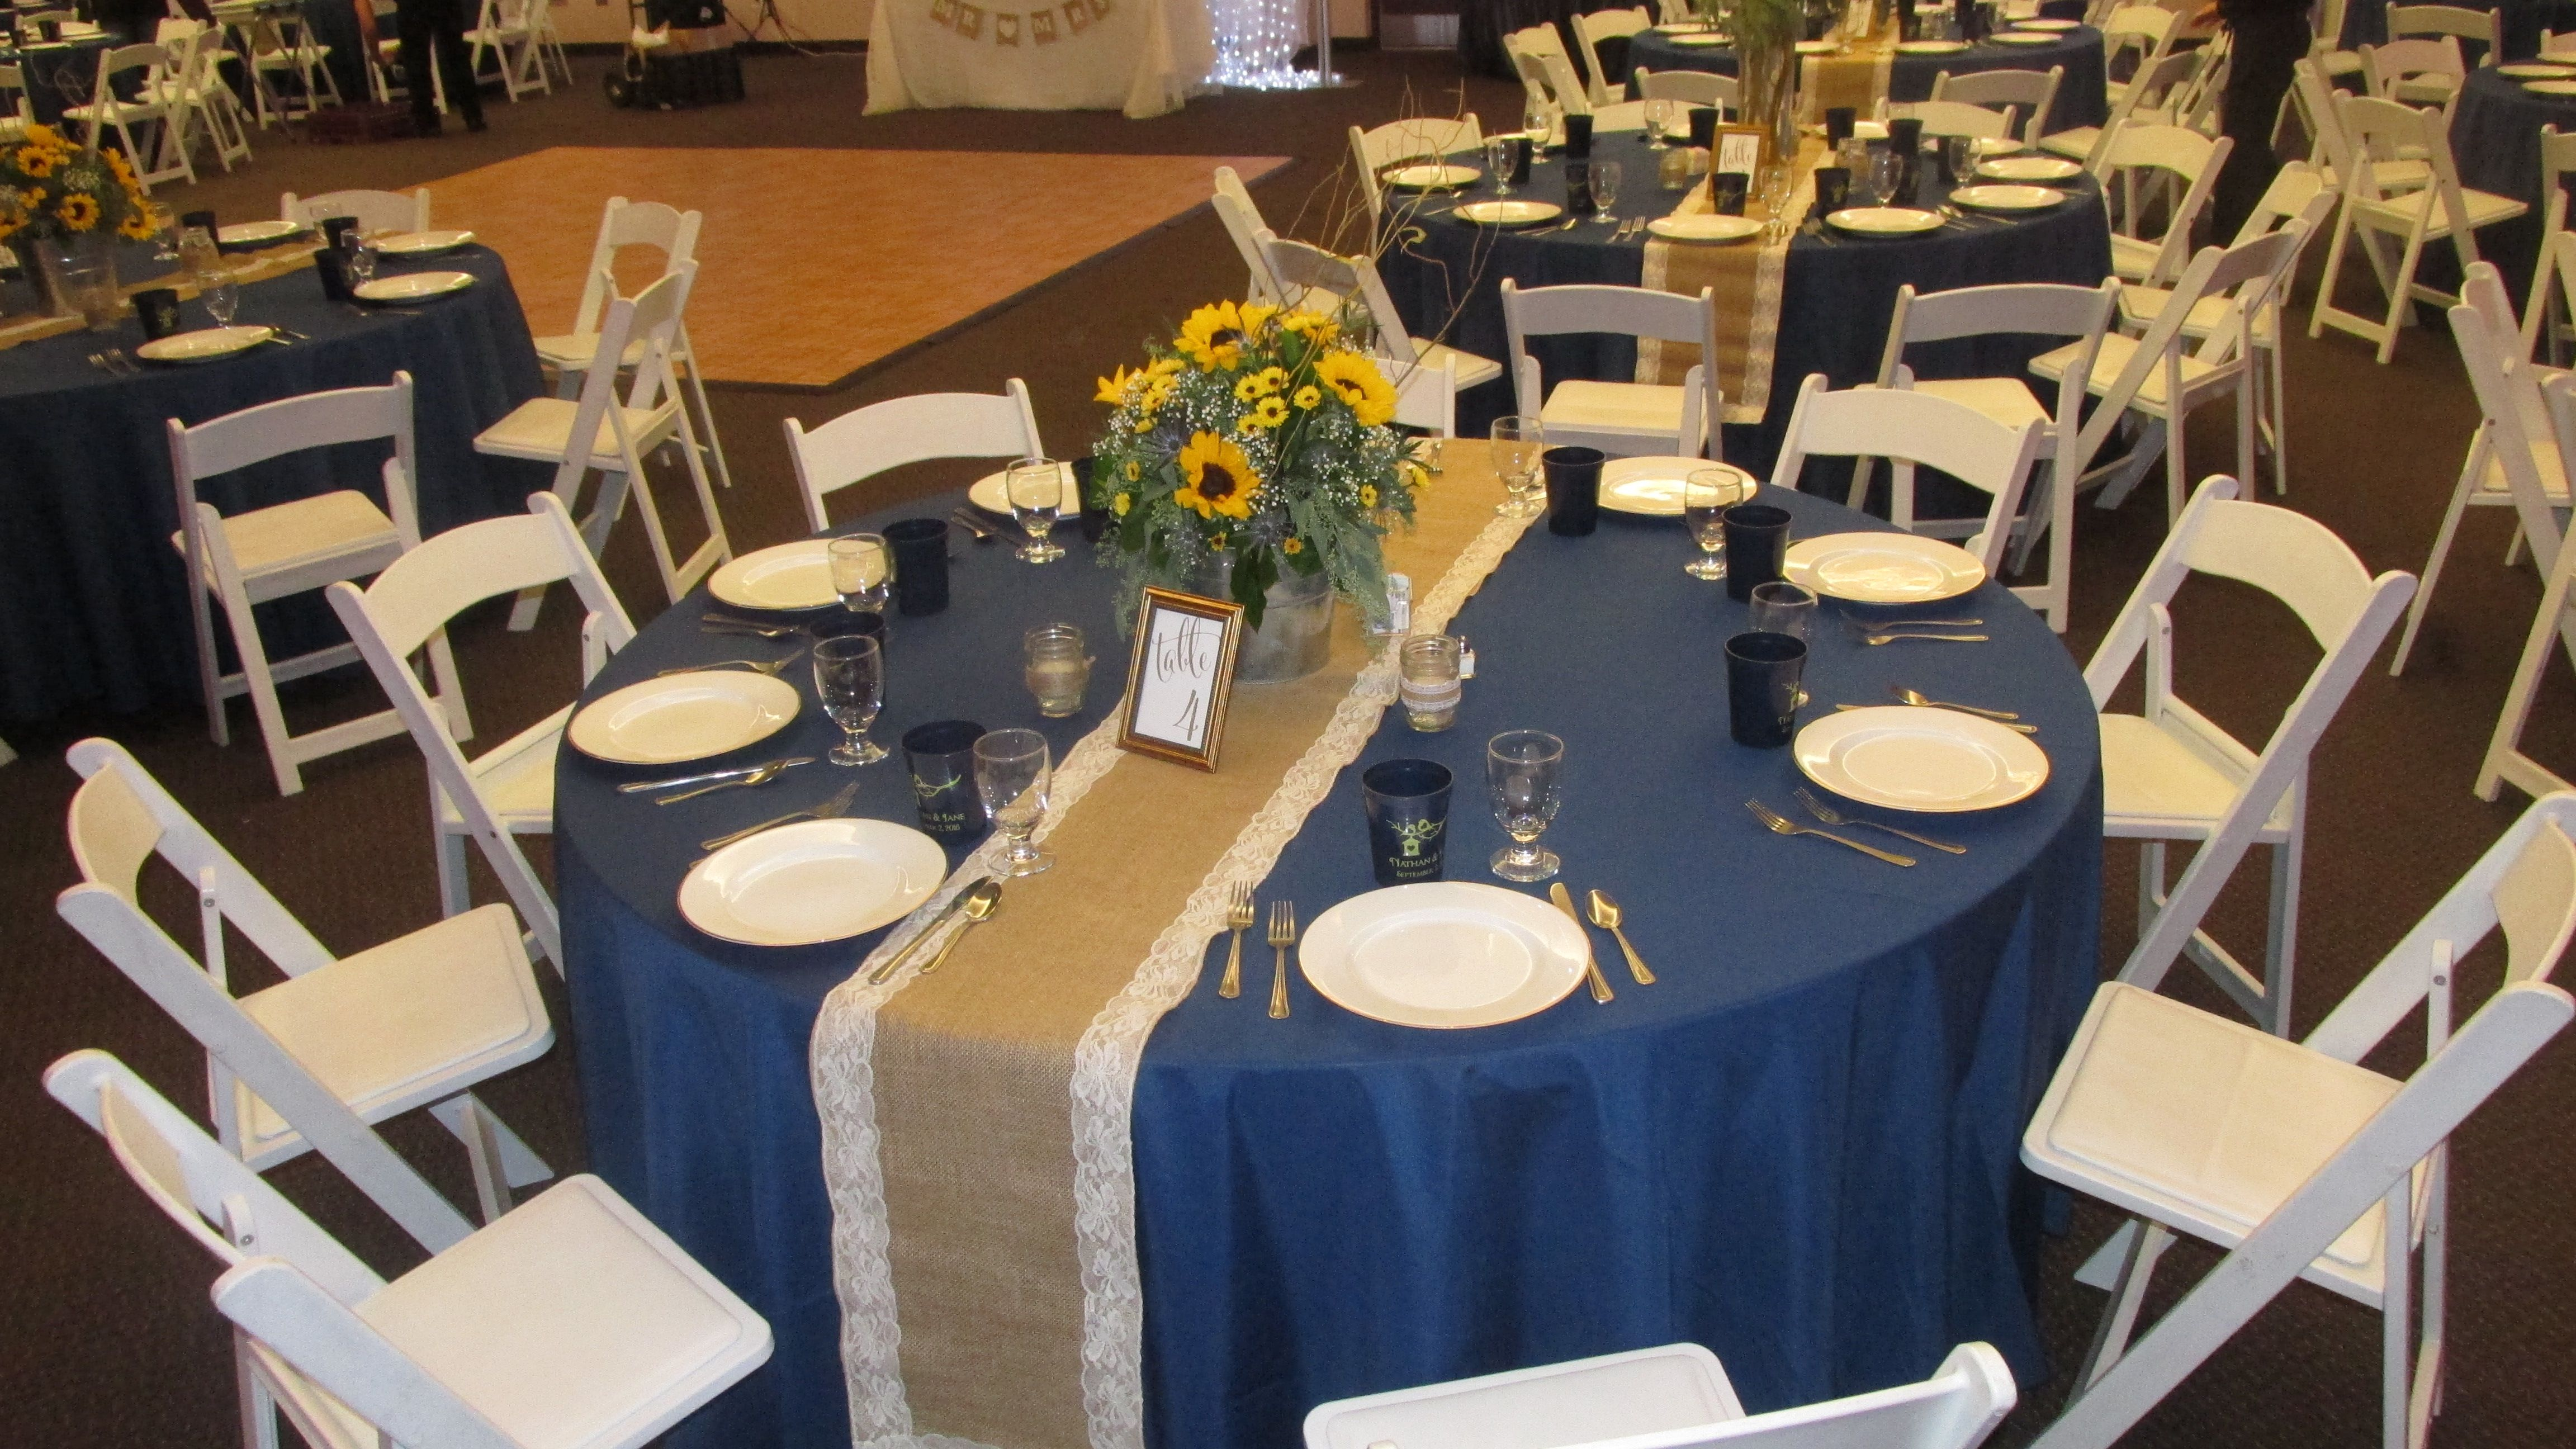 Our Special Events Venue Offers Flexible Seating Arrangements And Choose Your Own Catering Options Letting Y Seating Arrangements Event Venues Flexible Seating